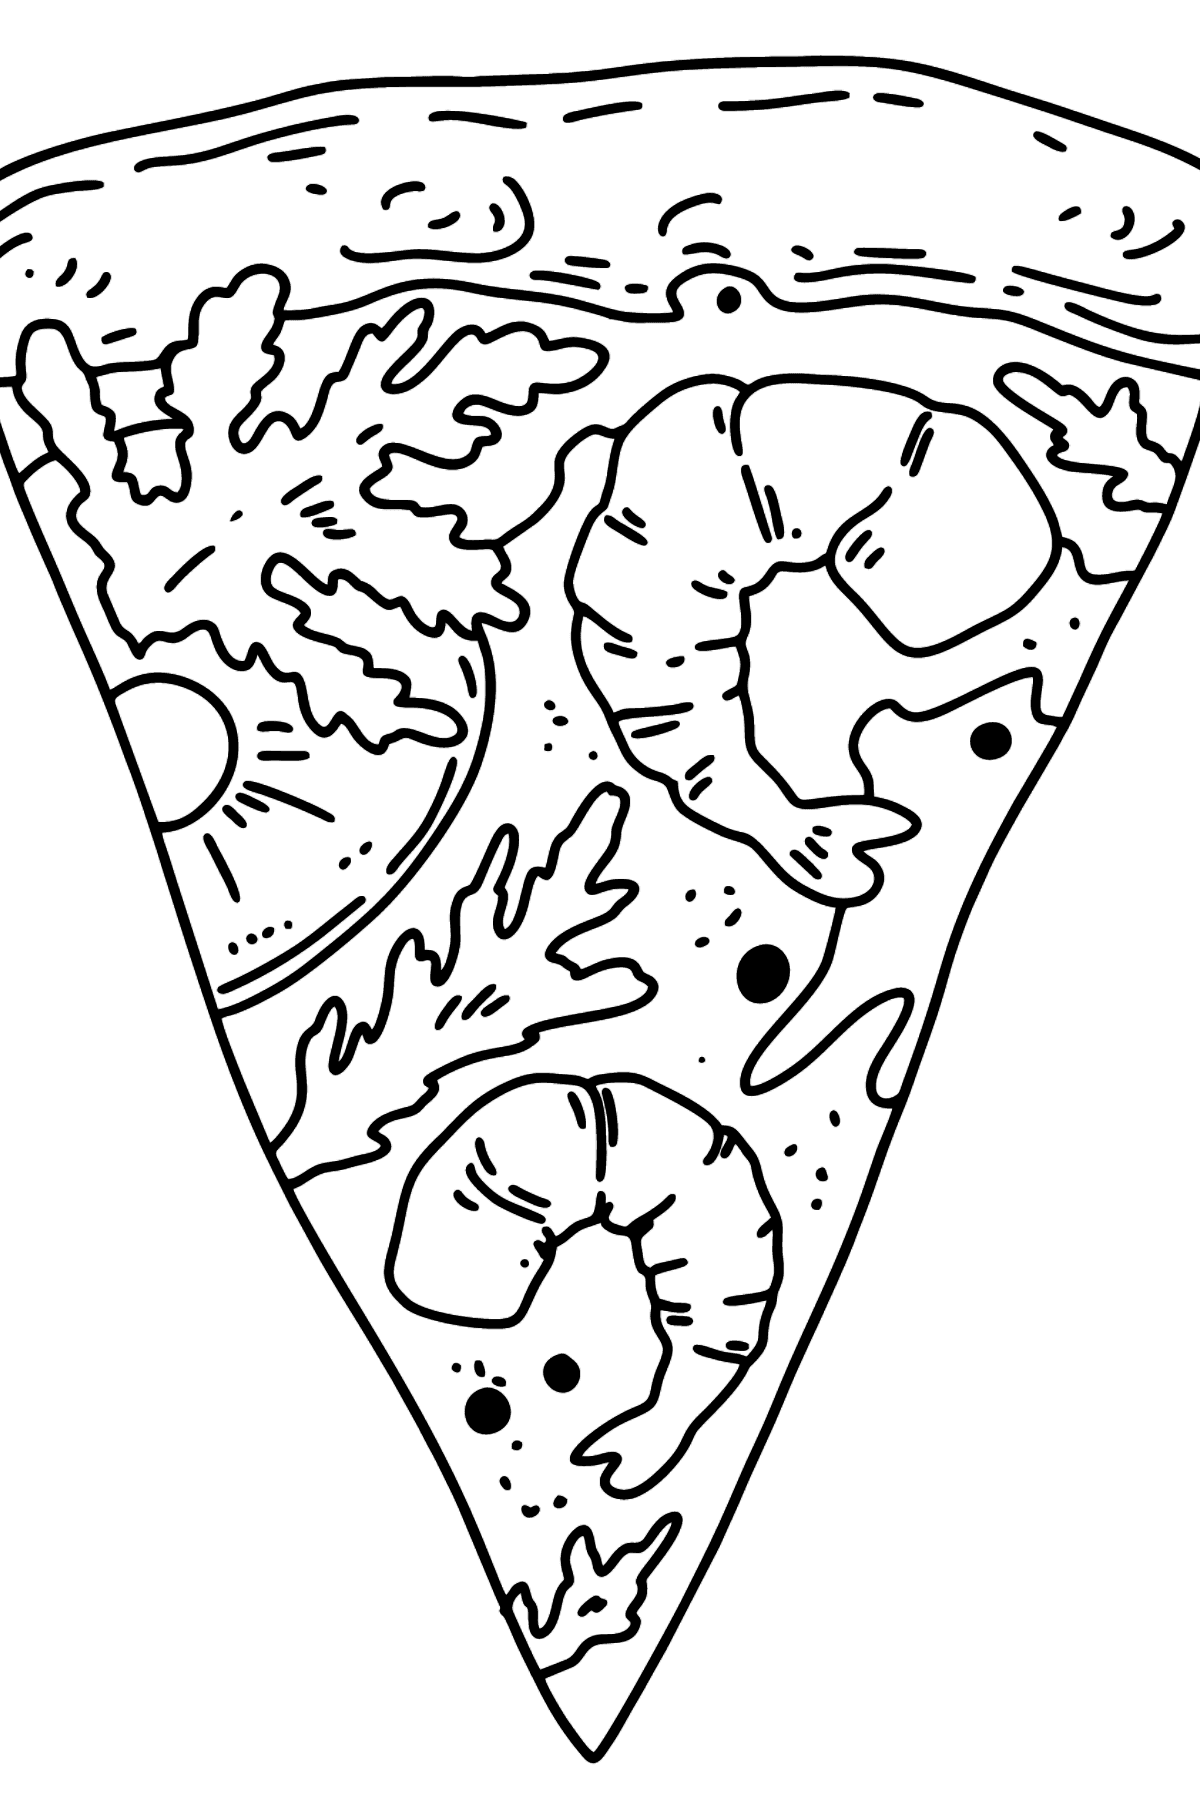 Shrimp Pizza coloring page - Coloring Pages for Kids